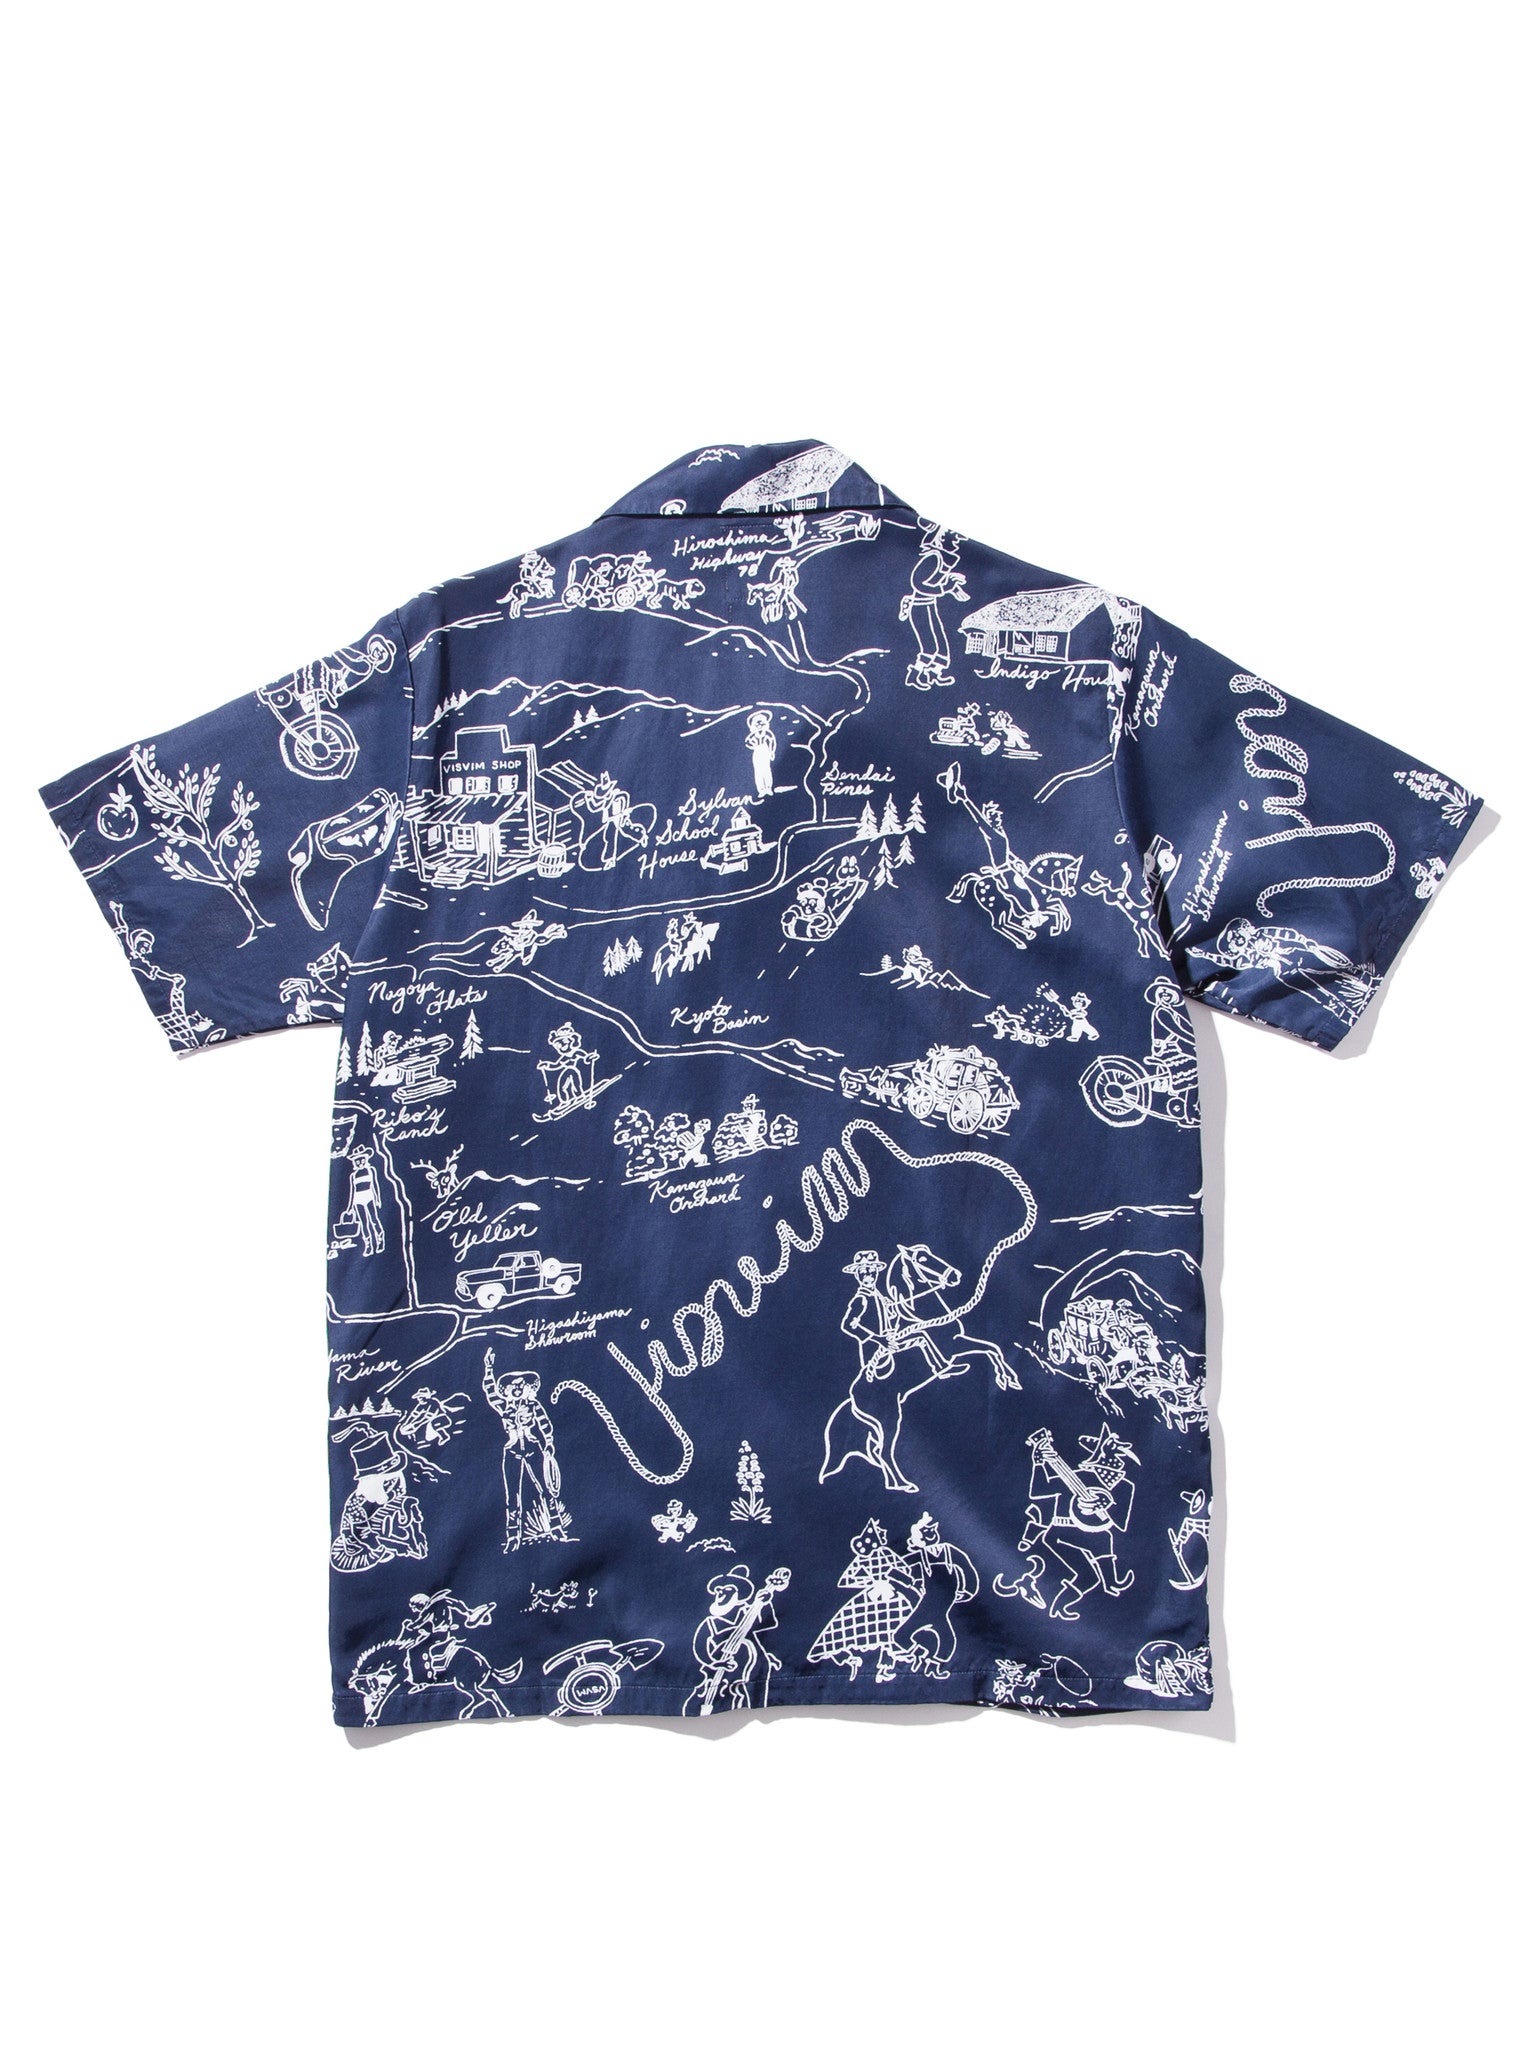 Duke Shirt S/S Village (Rayon)